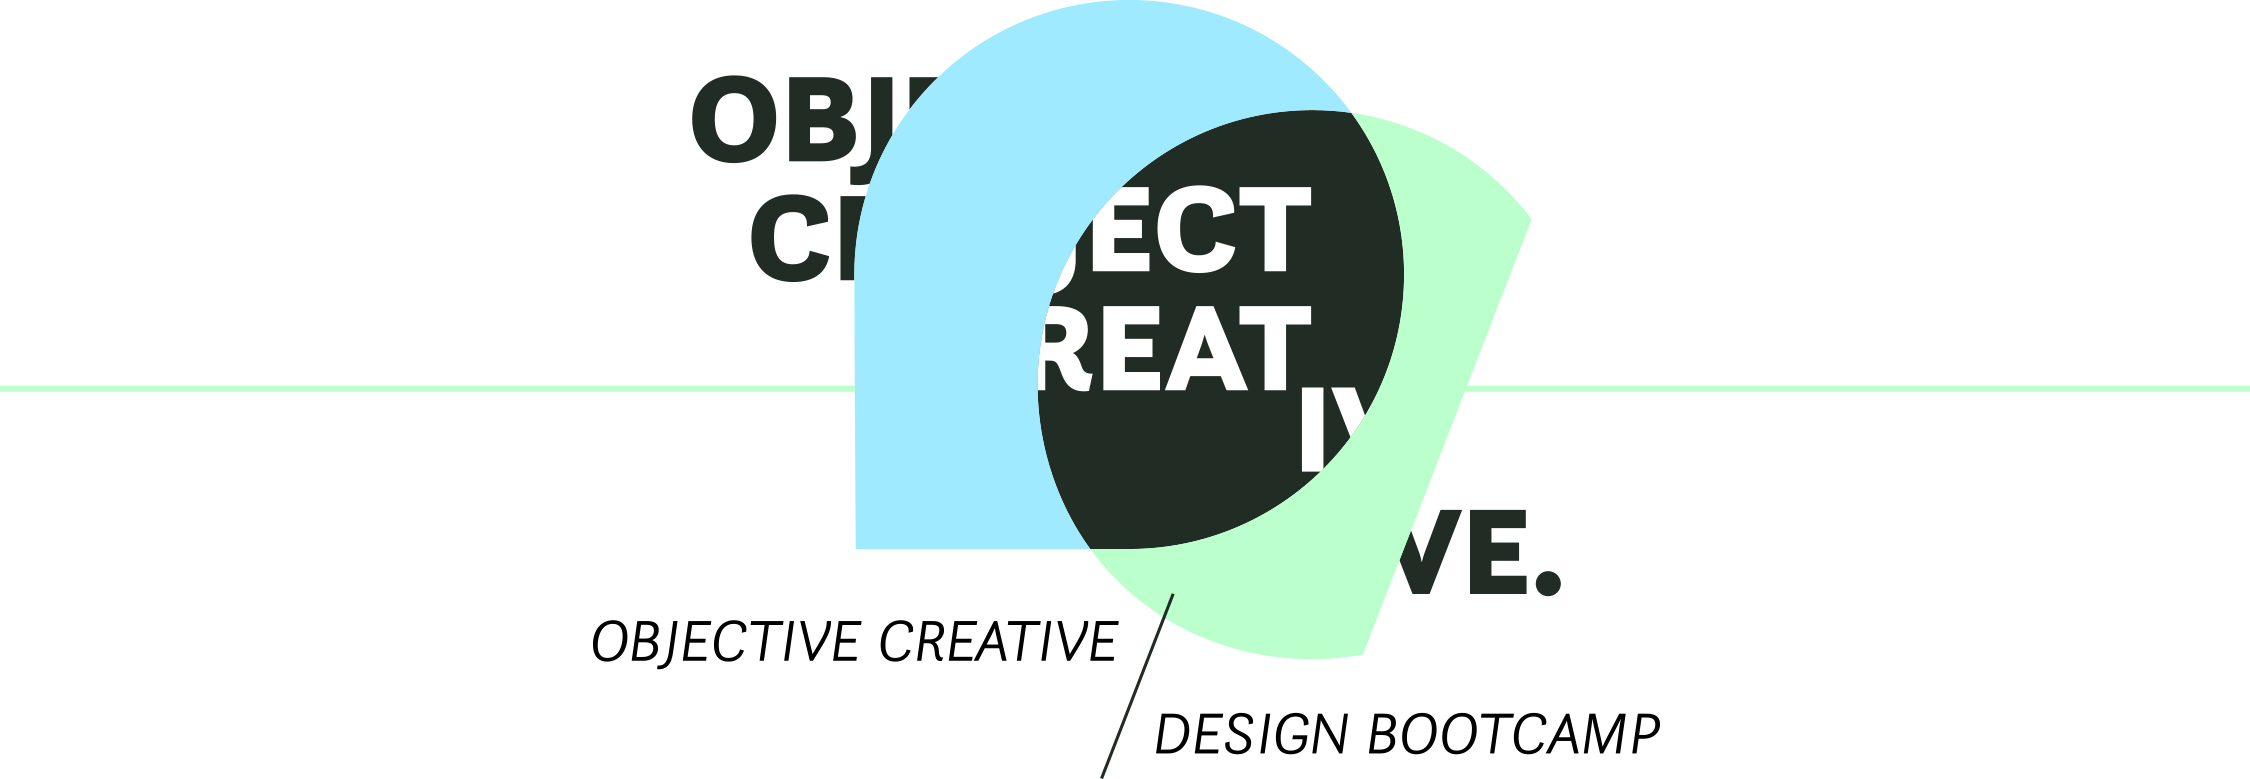 Objective Creative Design Bootcamp